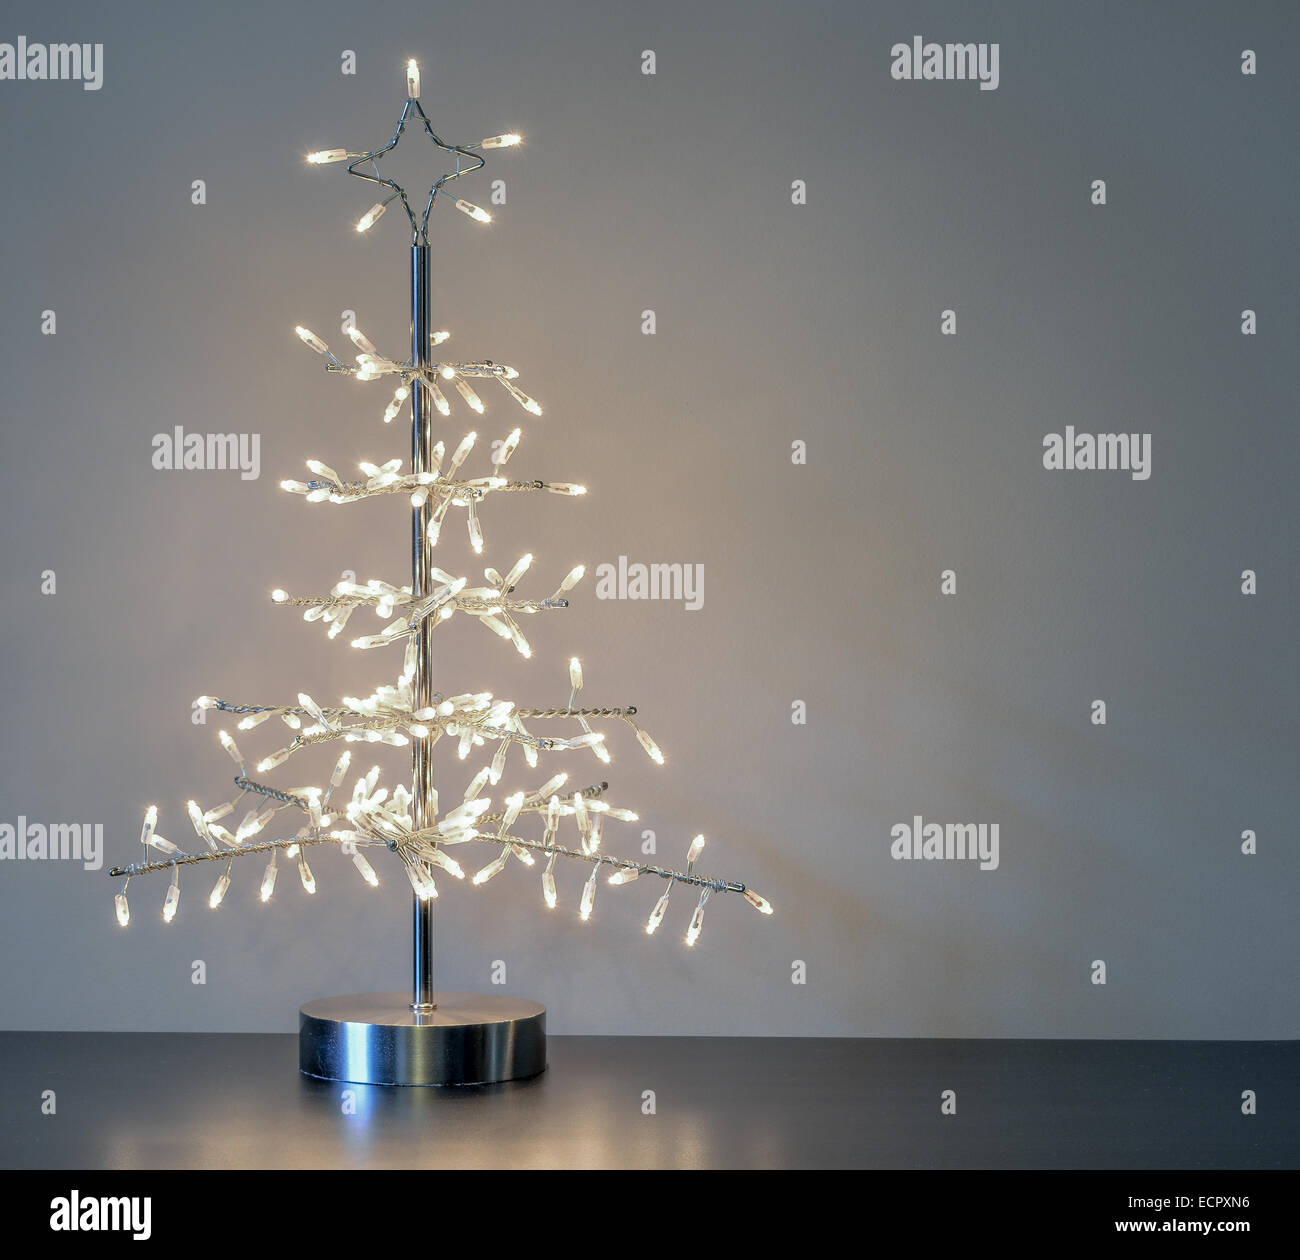 silver metal minimalist Christmas Tree ornament with white lights against plain neutral background with copyspace - Stock Image